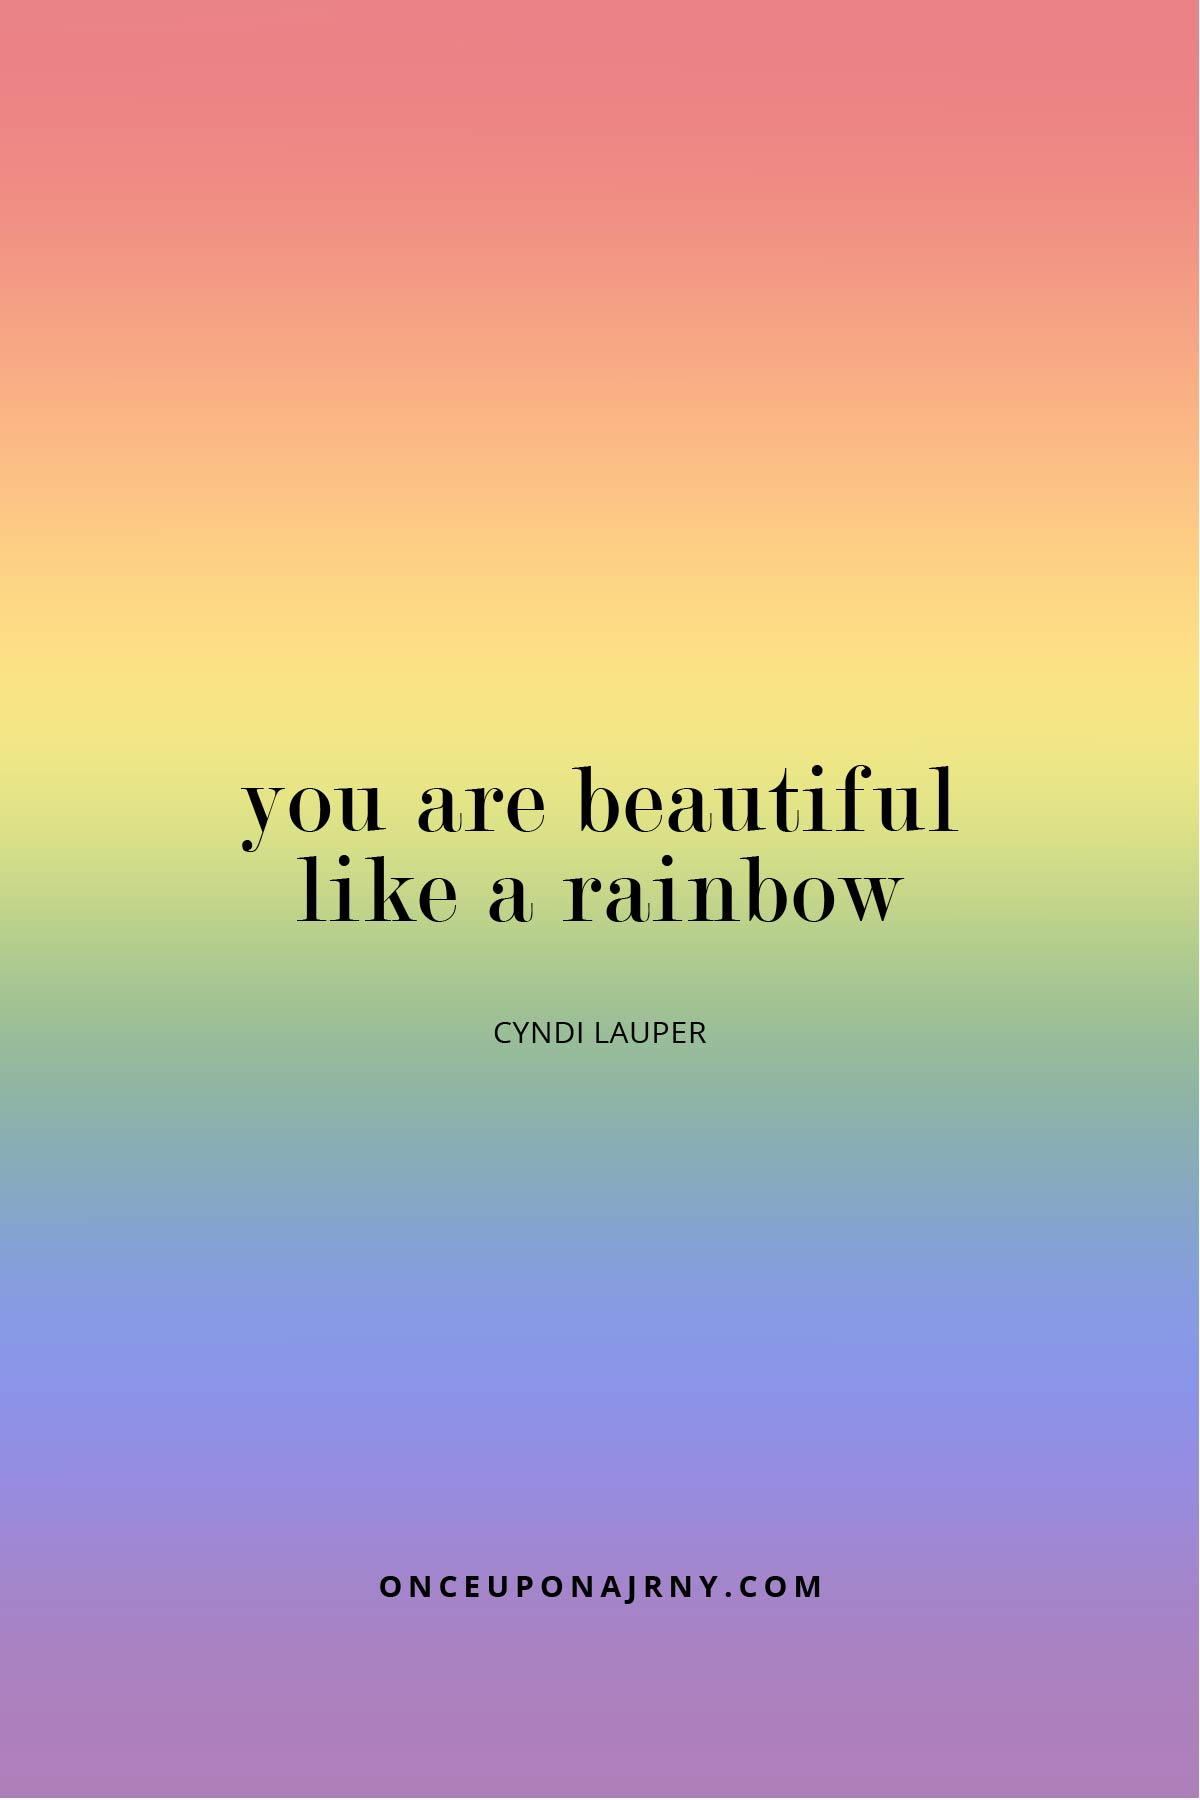 You are beautiful like a rainbow cute lesbian quotes